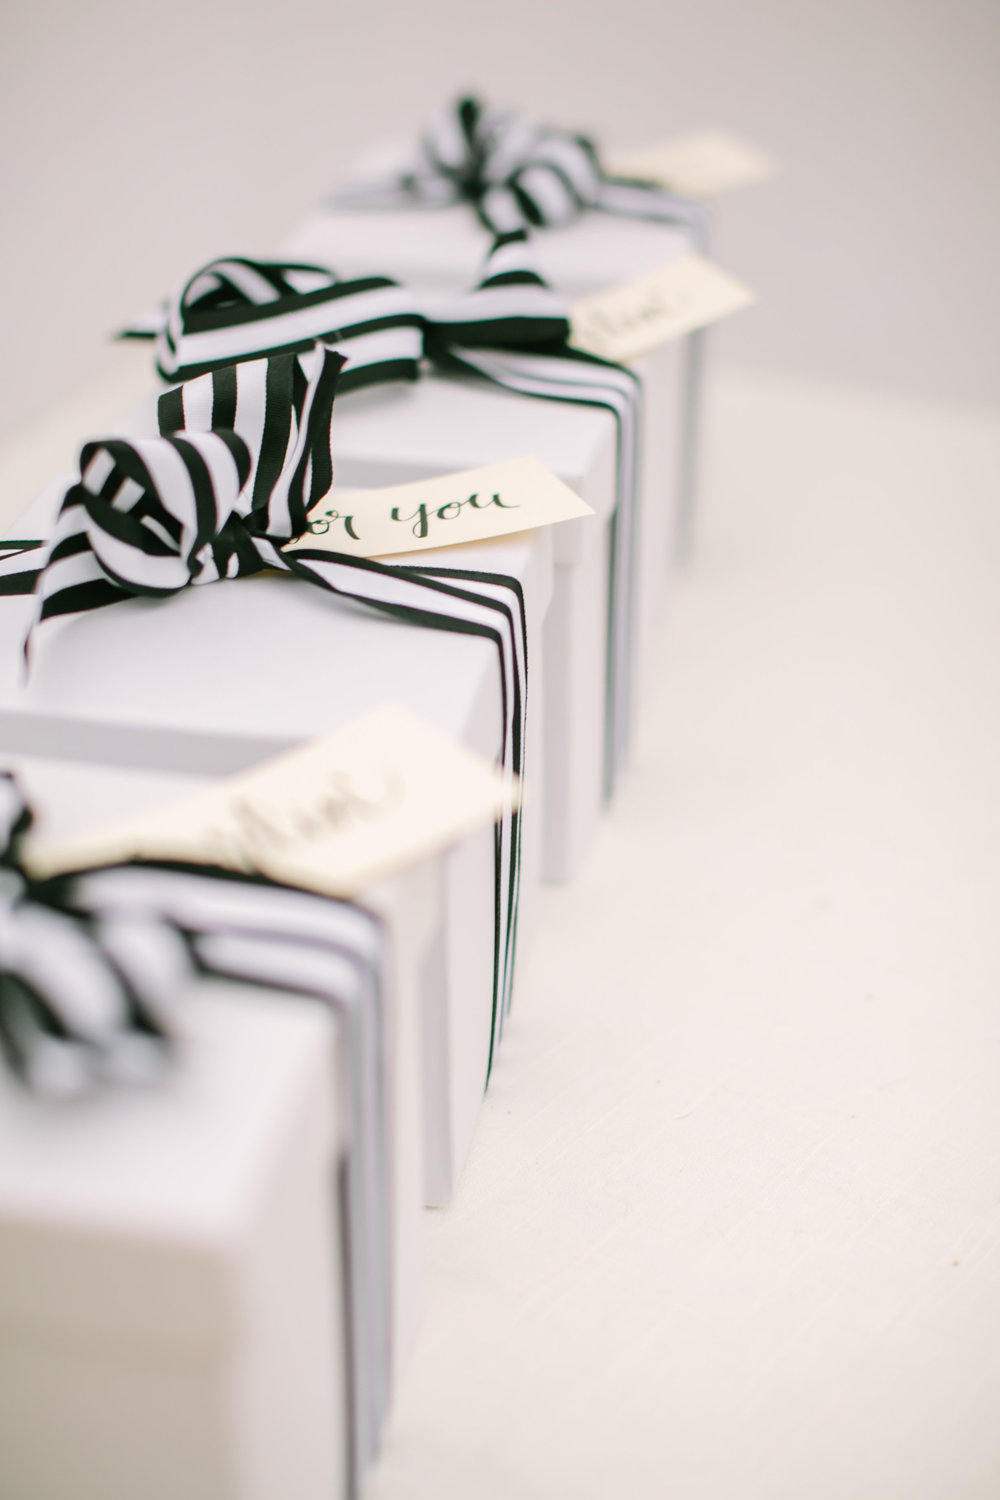 Red Oak Weddings | Wedding Vendor Guide | NY, NJ + PA | That's Darlin' Gifting